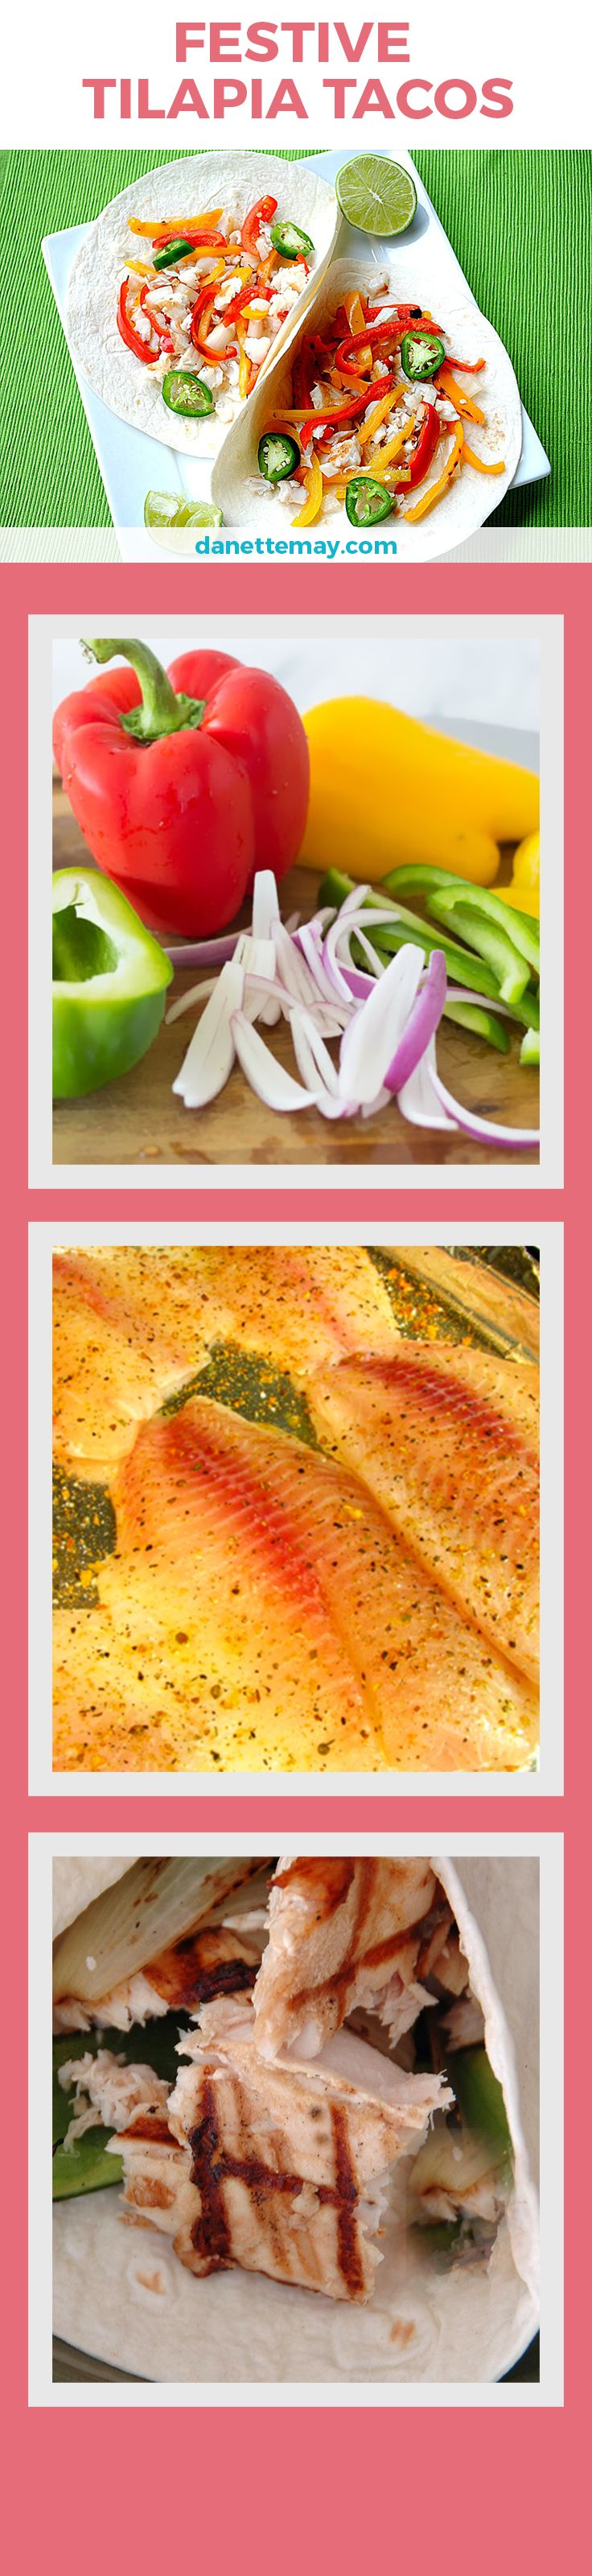 This Tilapia Taco recipe puts a healthy twist on Taco Tuesday!